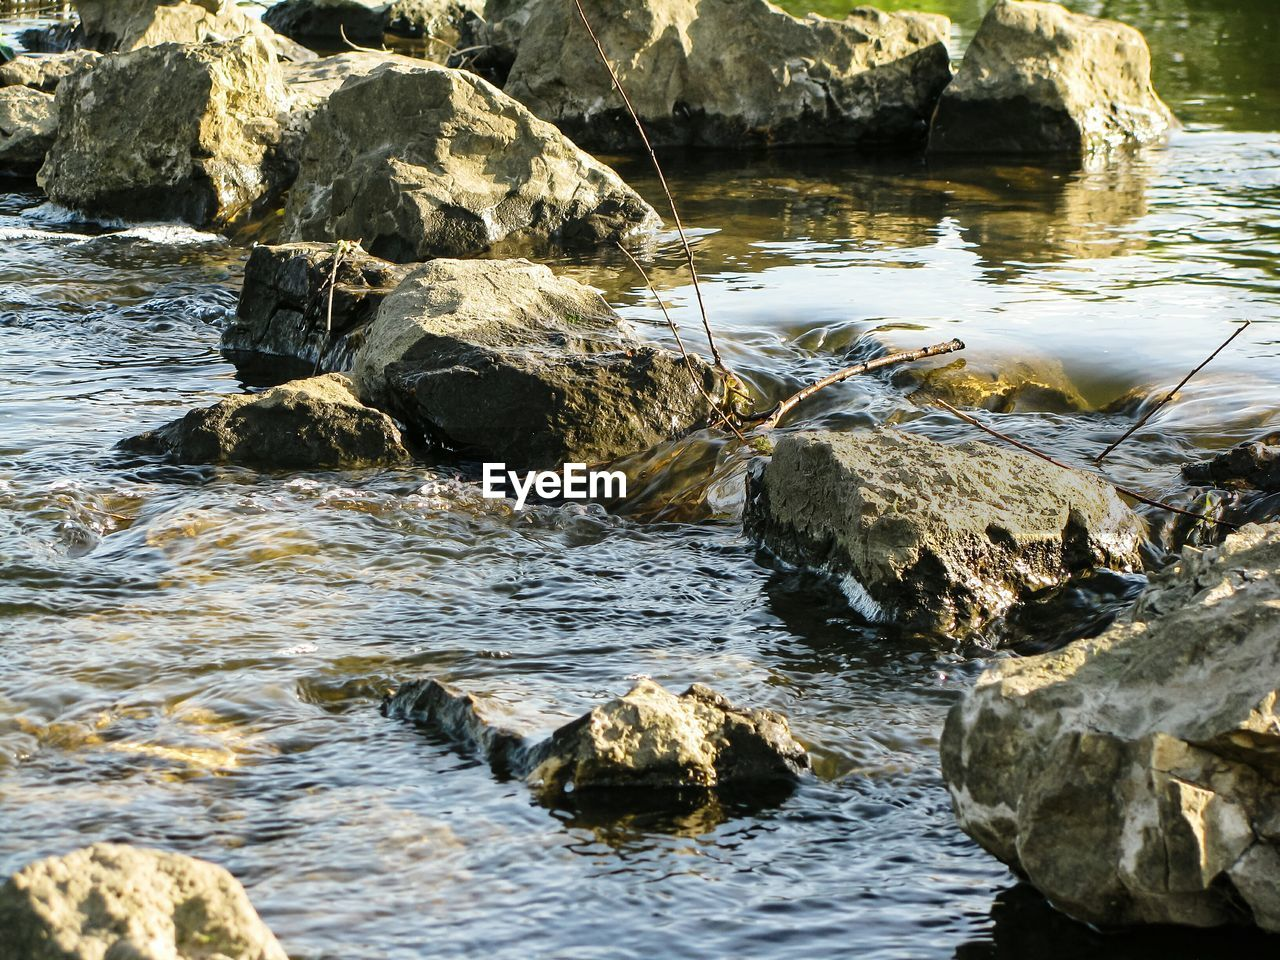 water, rock, rock - object, solid, beauty in nature, nature, motion, day, waterfront, no people, sea, flowing water, outdoors, scenics - nature, tranquility, land, rock formation, flowing, shallow